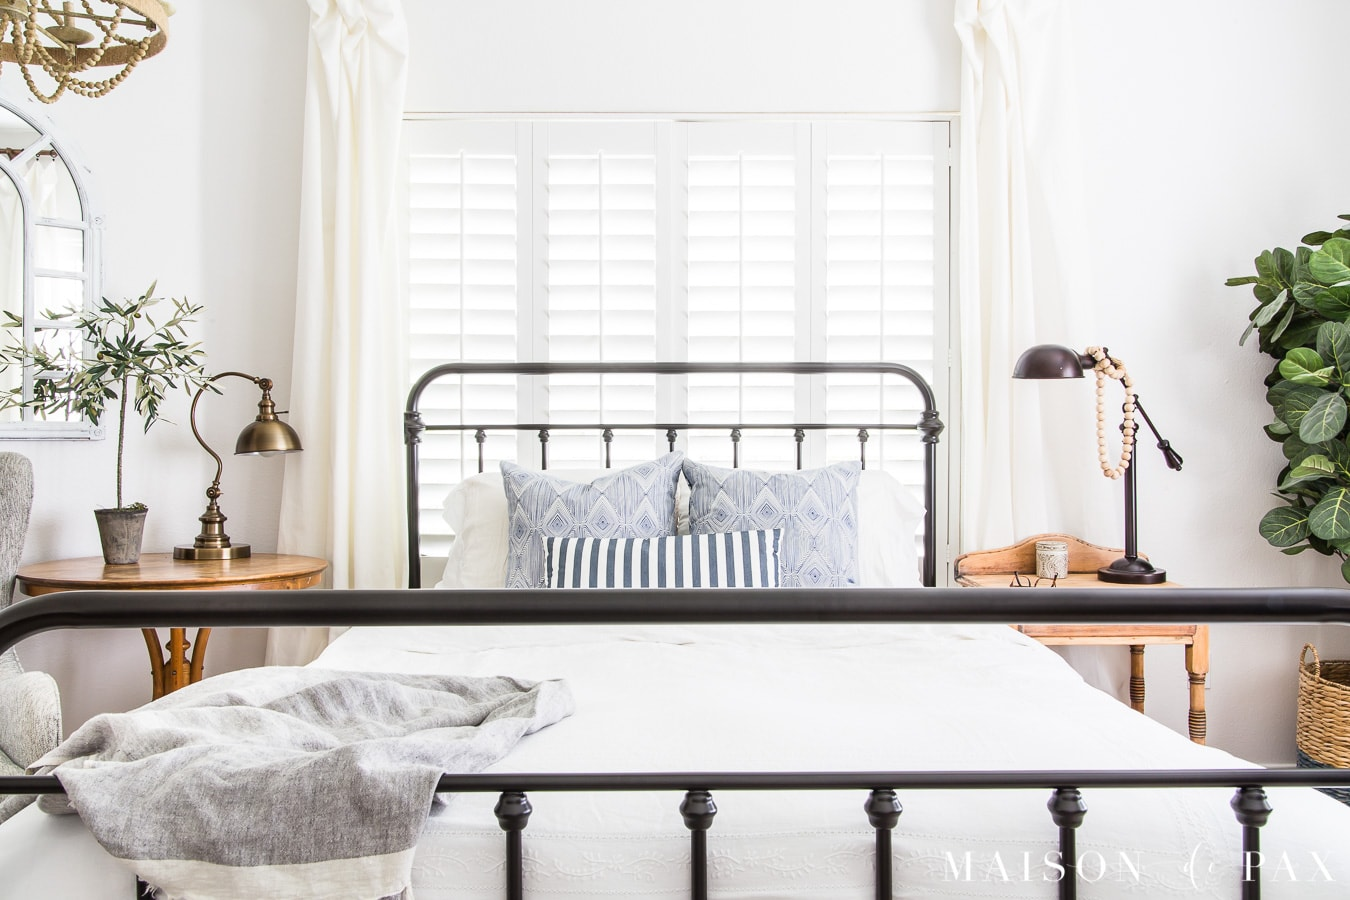 iron bed with white bedding and blue striped pillows